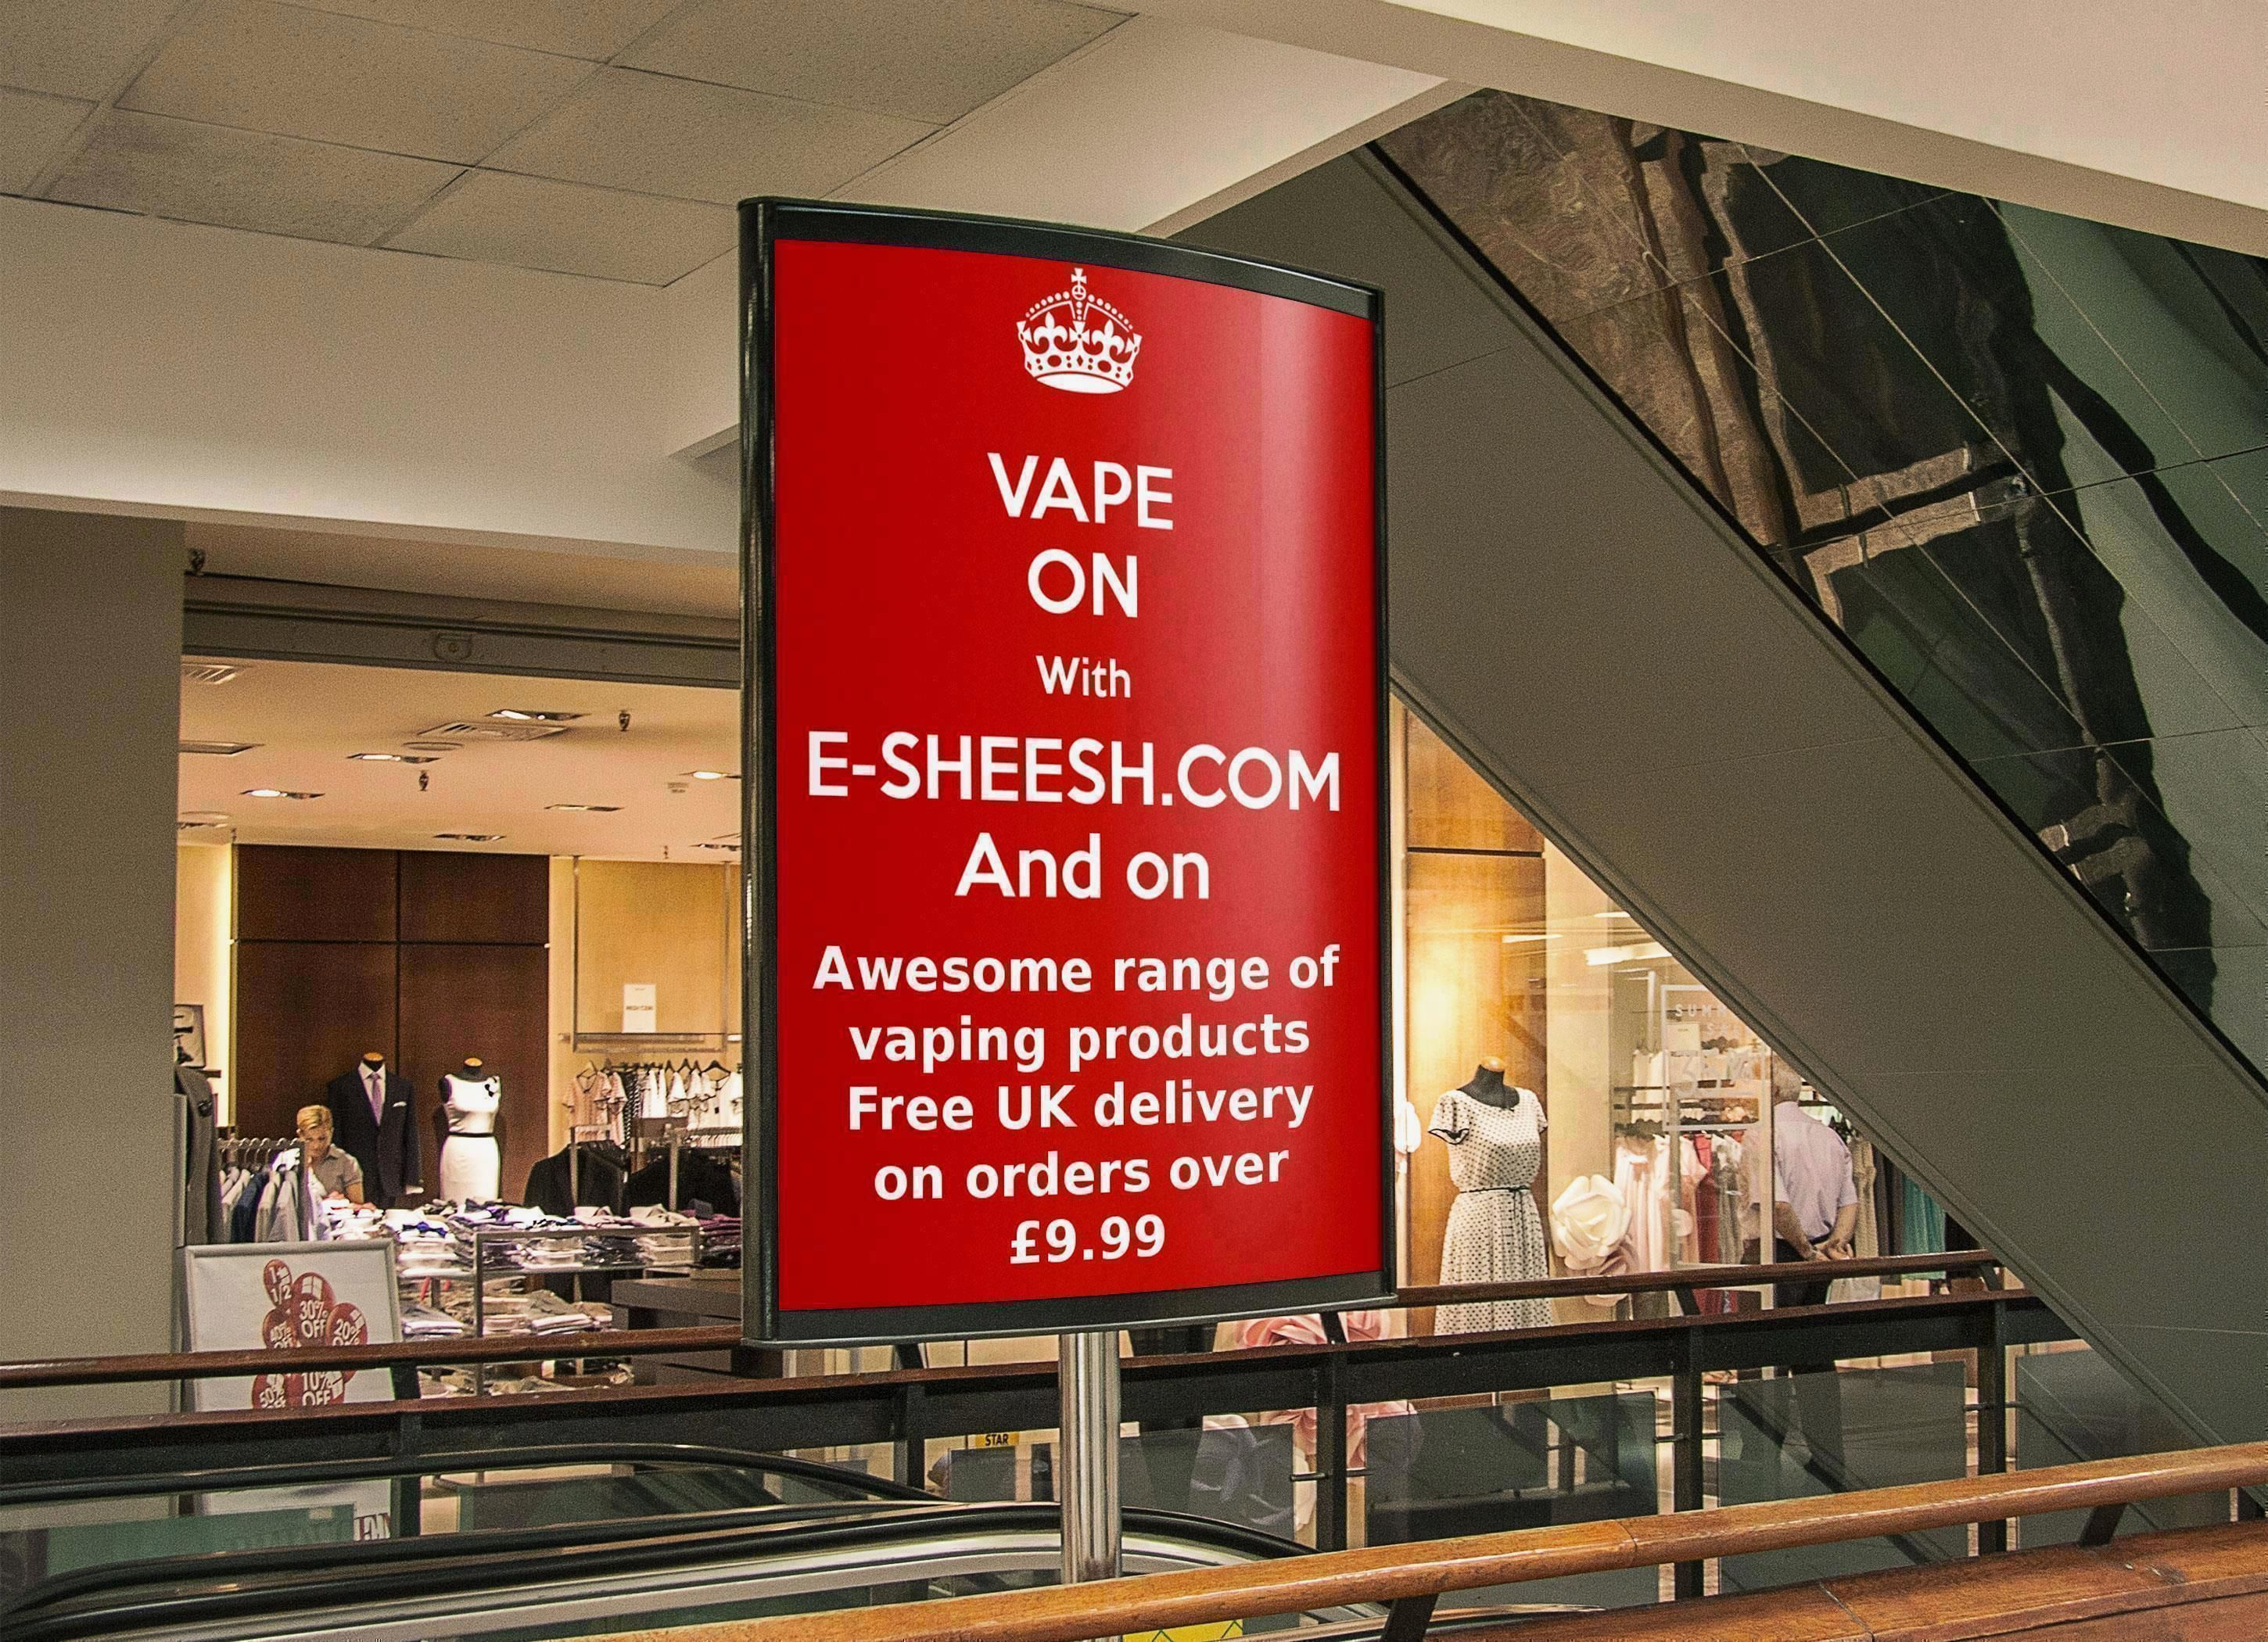 For all your vaping needs http://www.e-sheesh.com